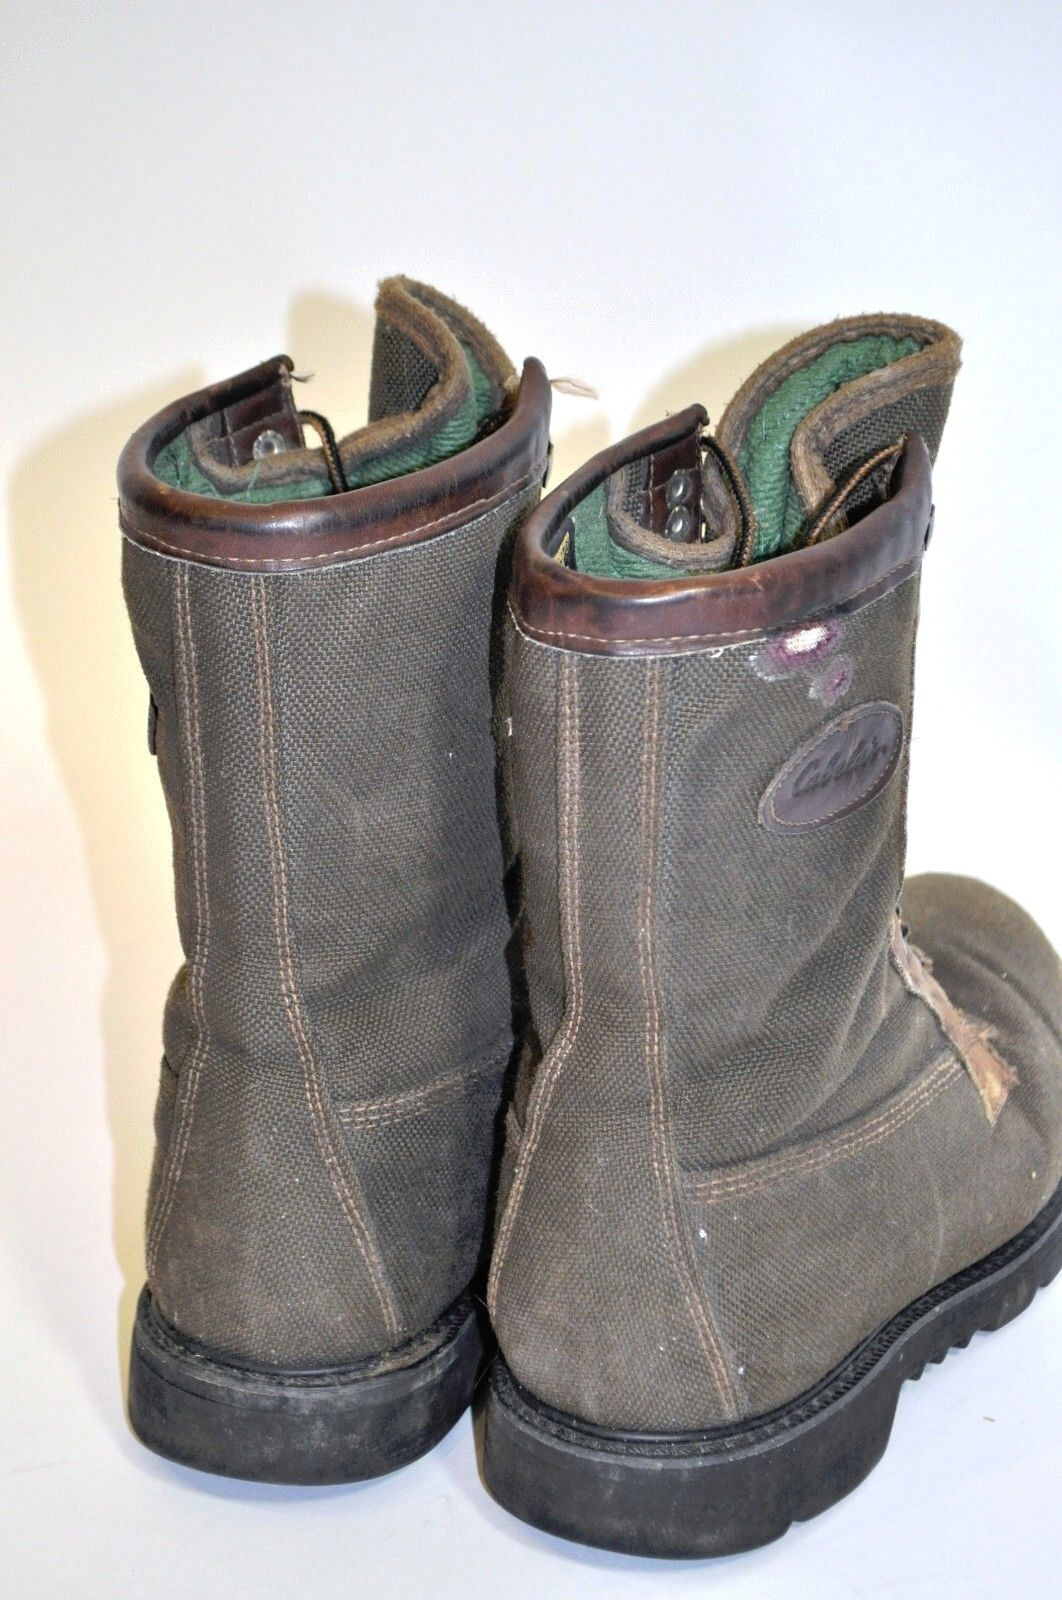 Mens Cabelas GoreTex Thinsulate Insulated Insulated Insulated Hunting Work Hiking Stiefel 81977 8 EE 562987